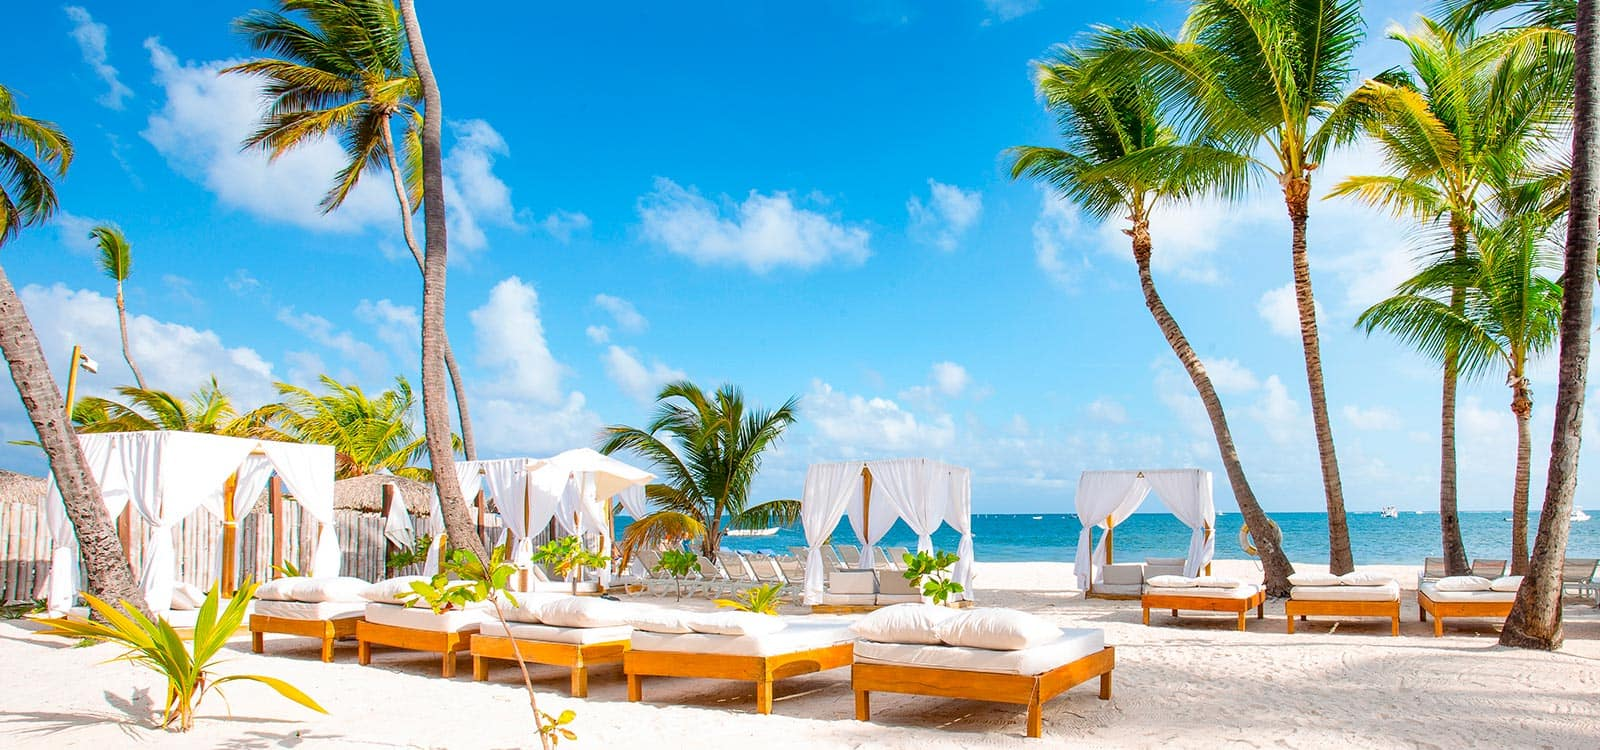 Summer vacations to Dominican Republic